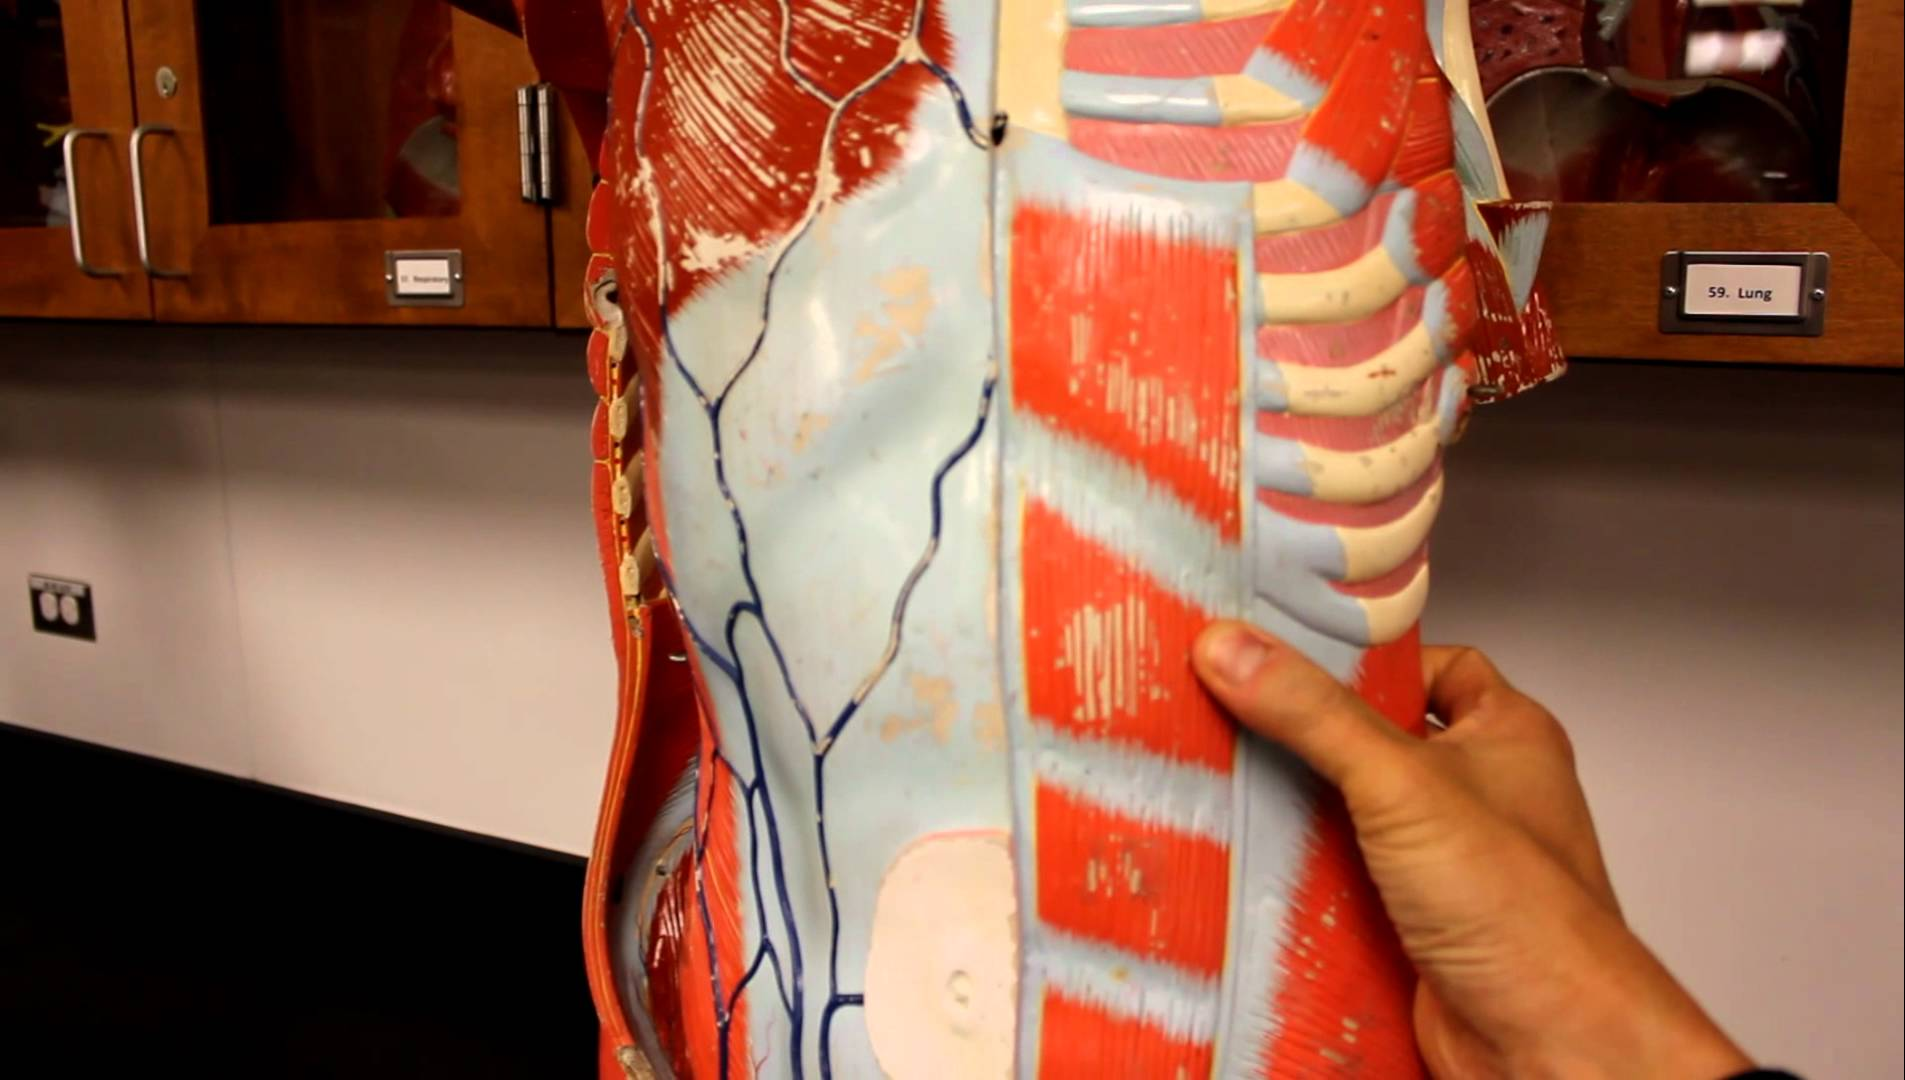 Rectus Abdominis Muscle Check123 Video Encyclopedia